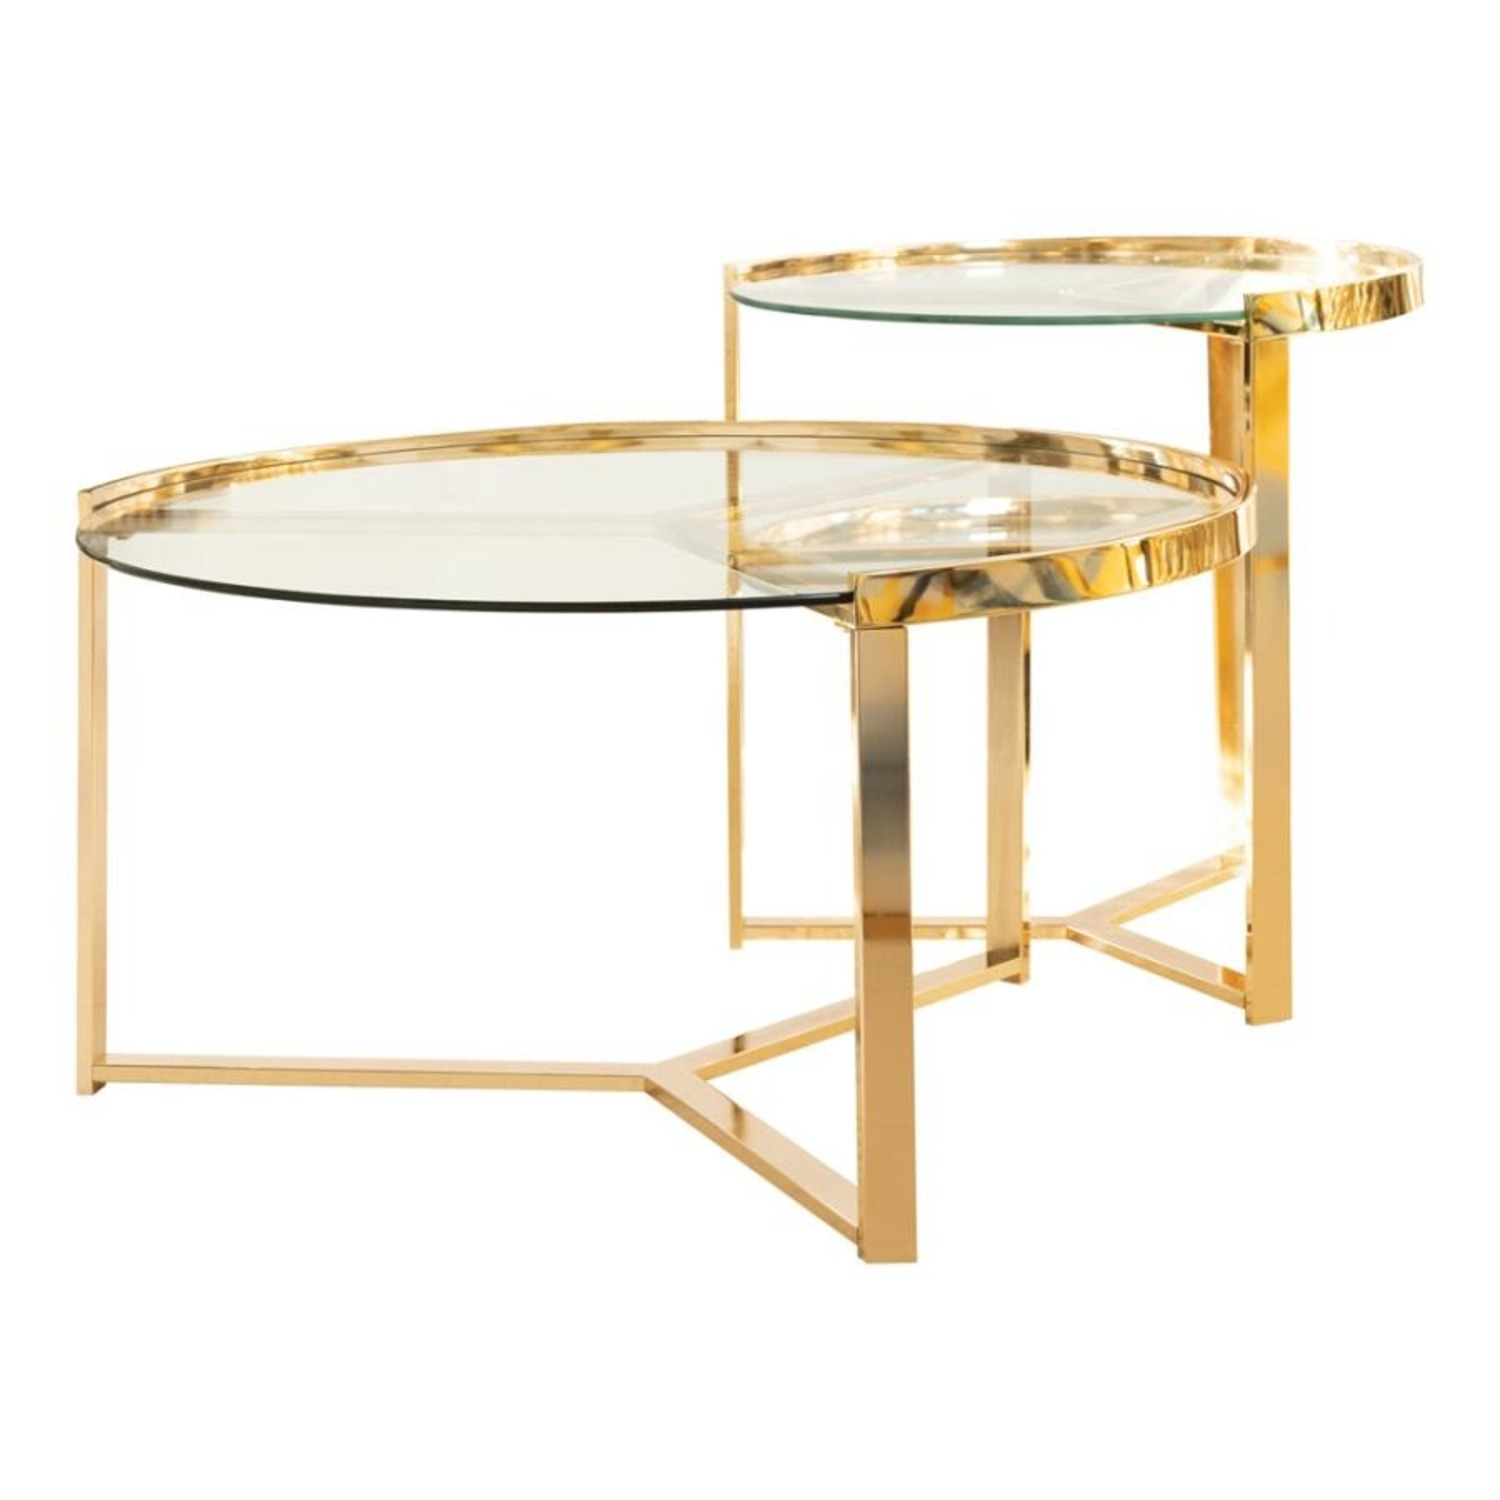 Nesting Table In Gold Finish W/ Tempered Glass - image-1